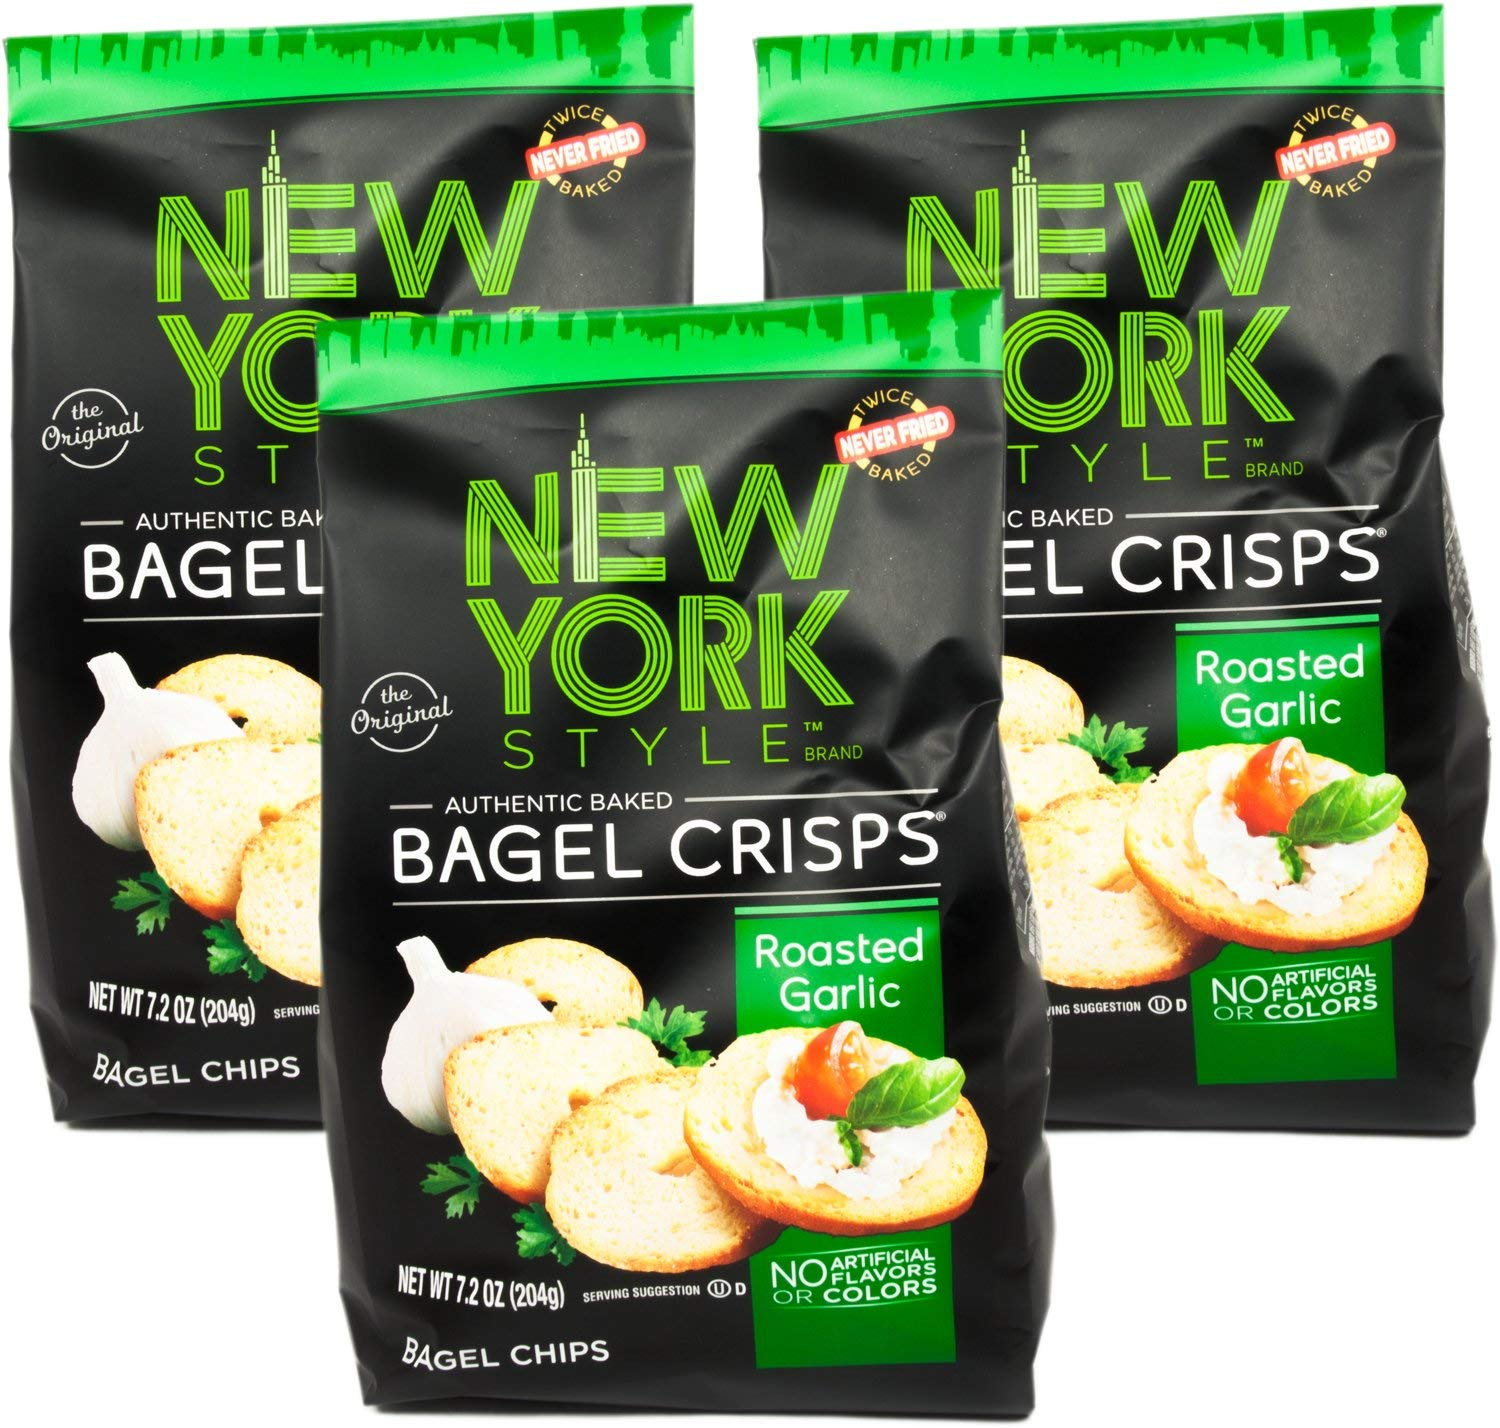 New York Style Garlic Bagel Crisps, 7.2 oz - PACK OF 6 by New York Style